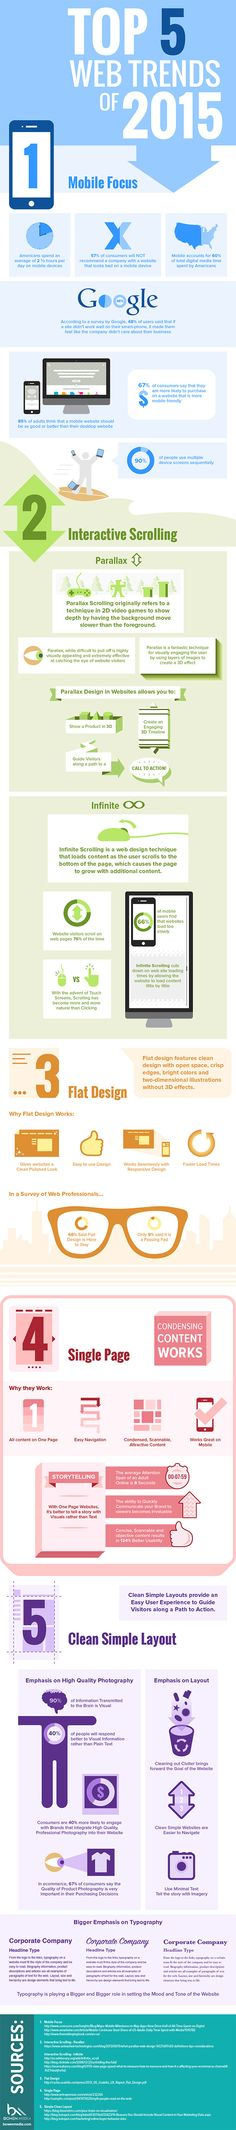 Website Design The Top 5 Trends You'll See in 2015